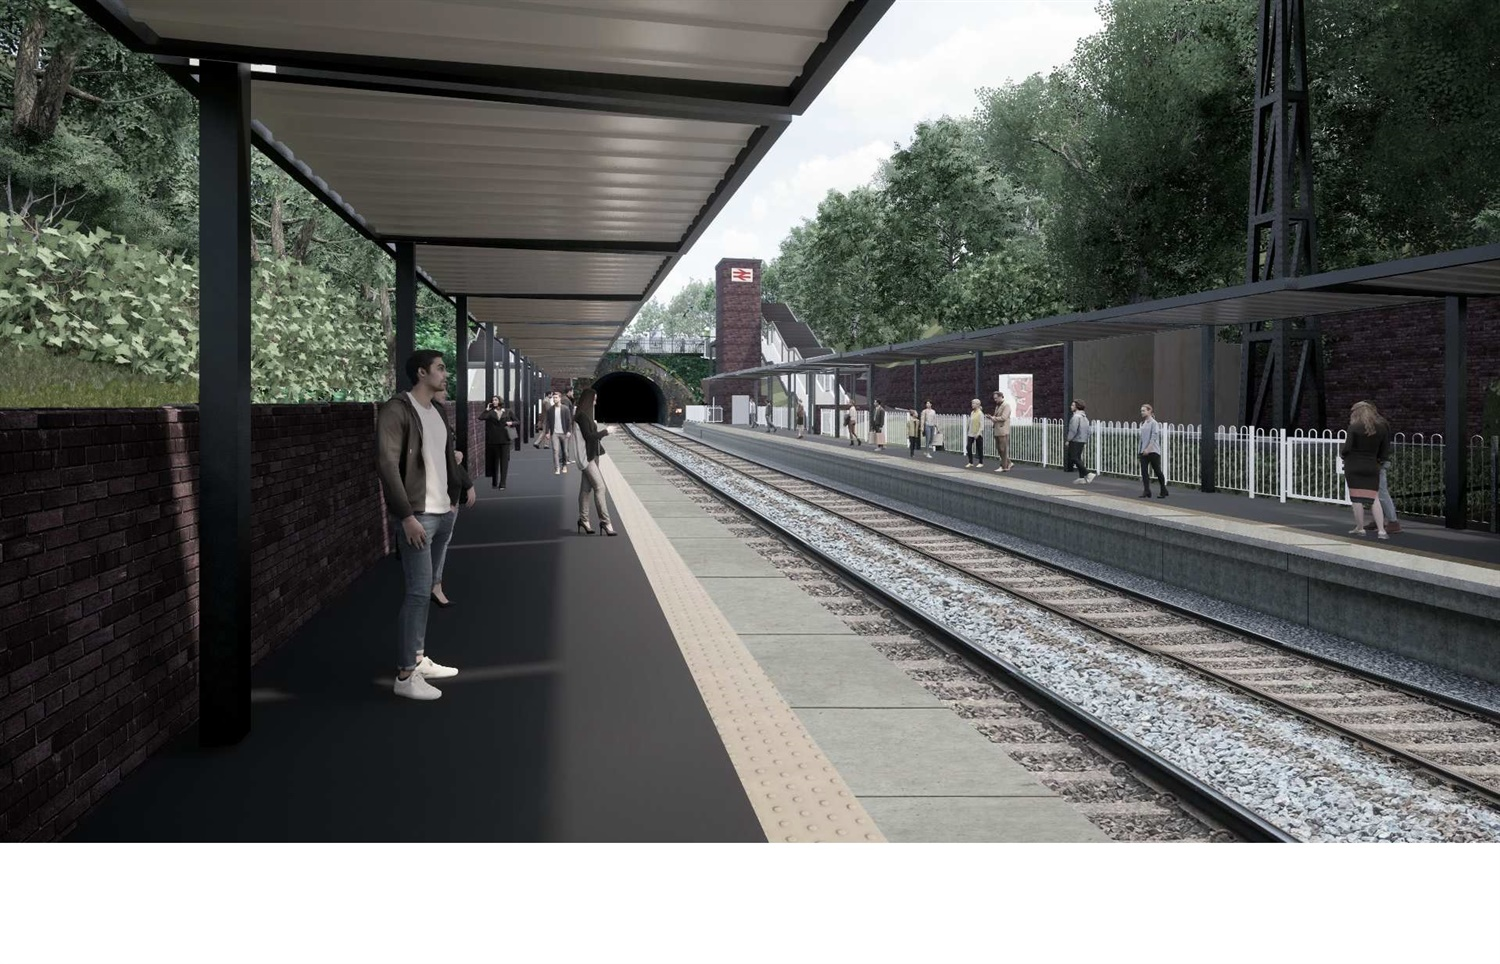 Plans submitted for new Moseley railway station